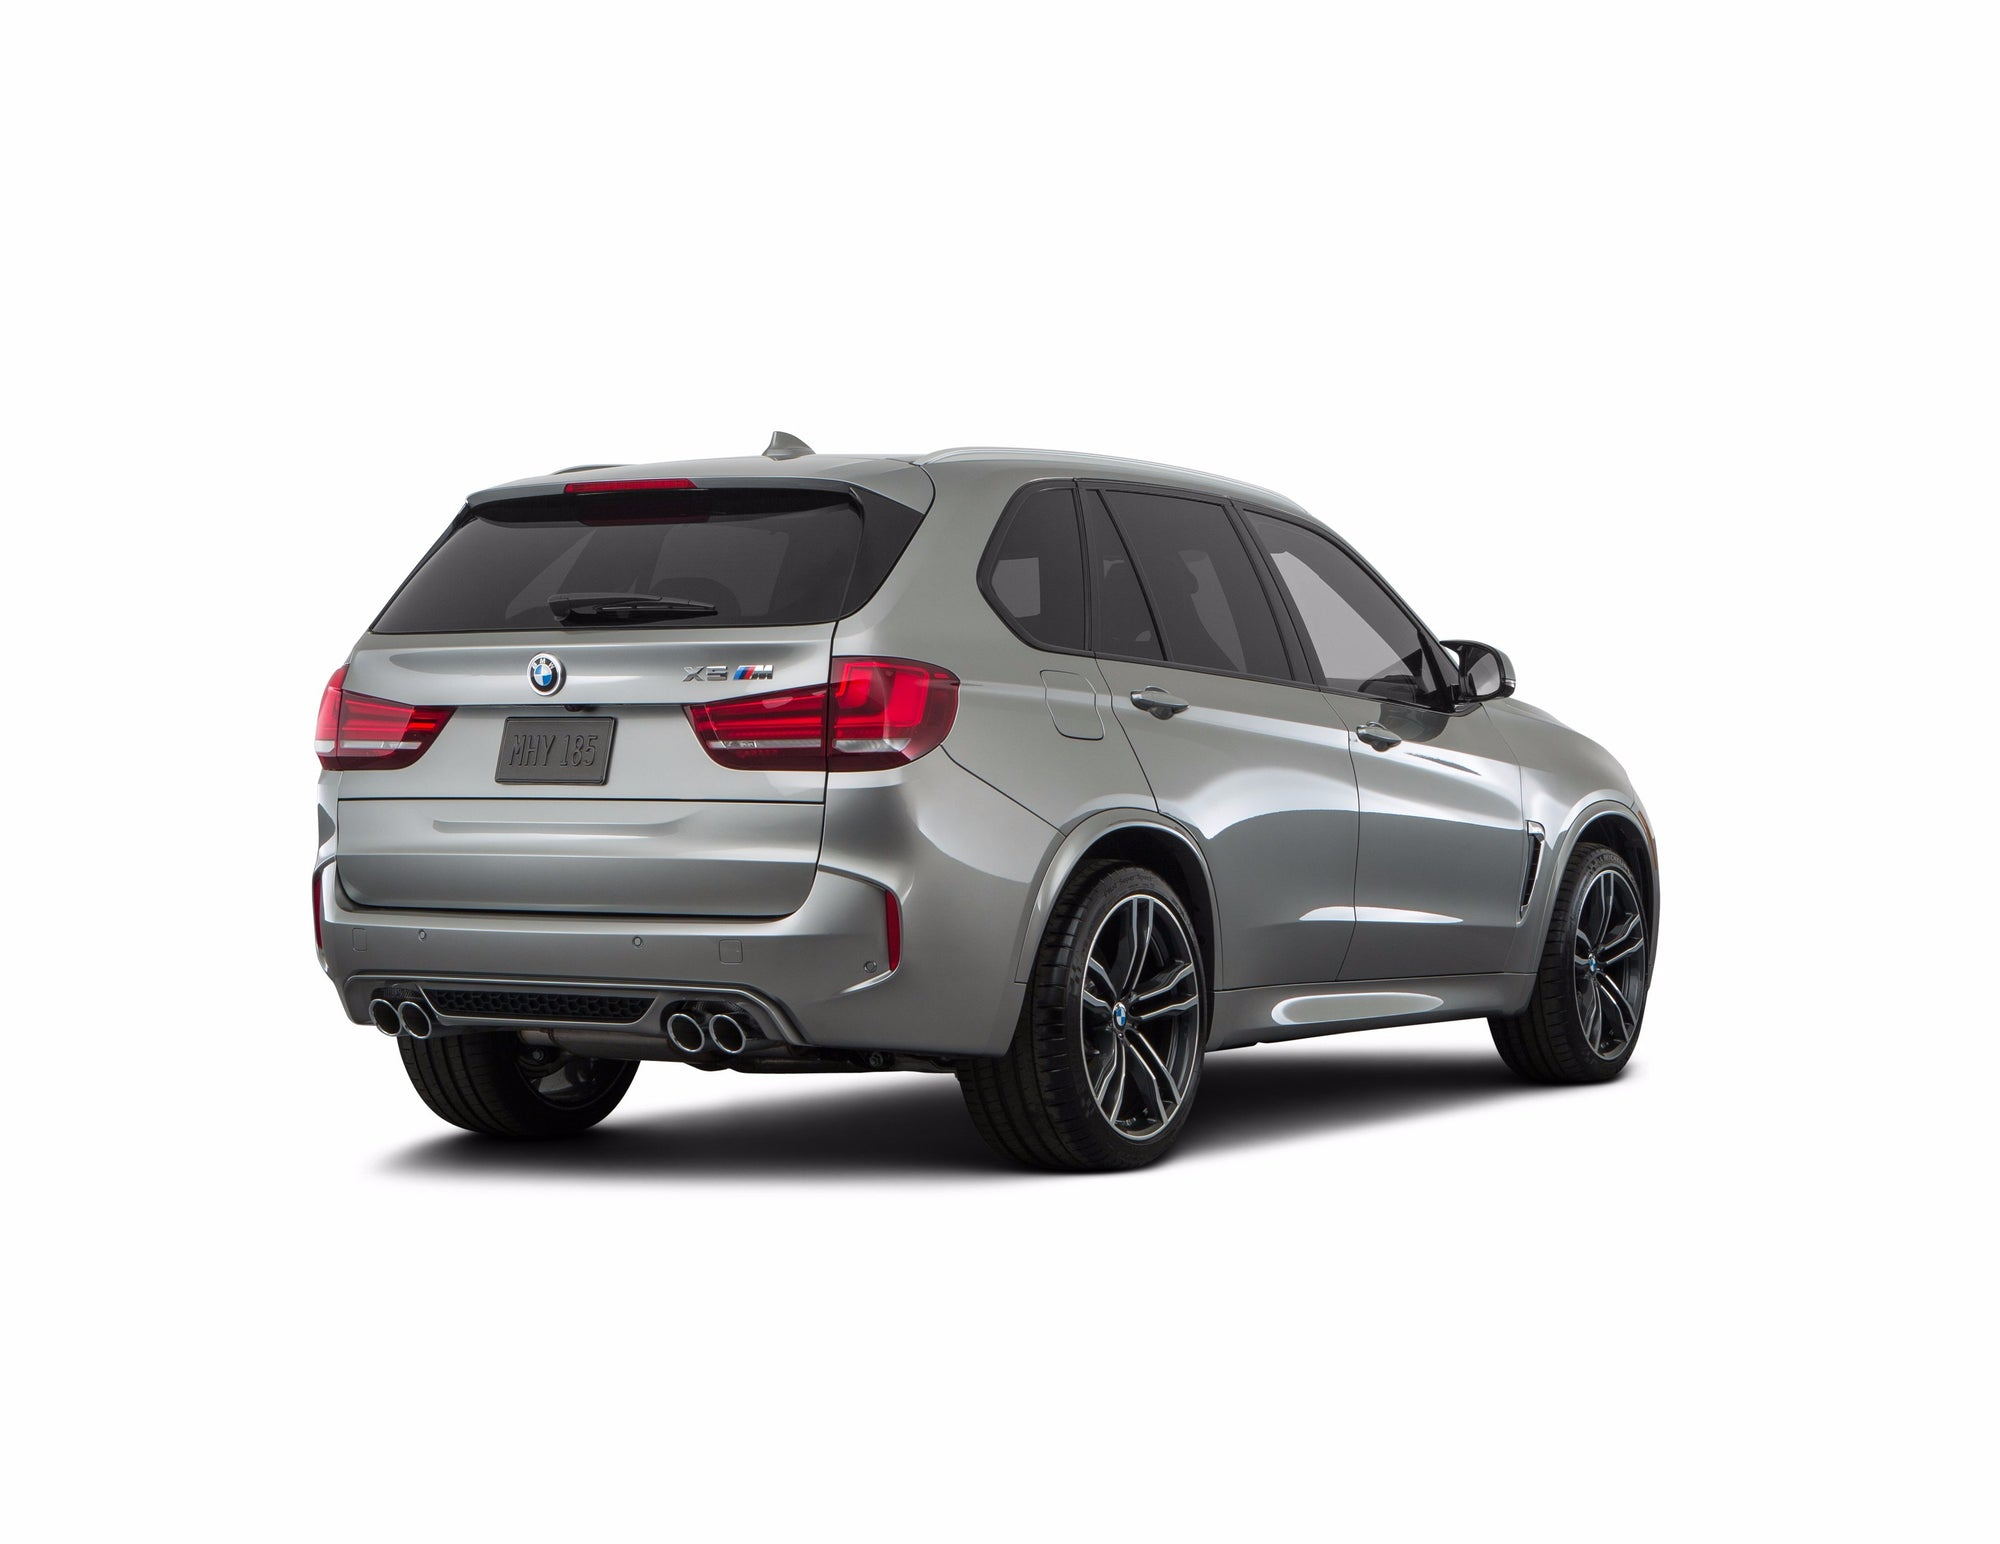 bmw x5 hitch made to be hidden increase tow capacity. Black Bedroom Furniture Sets. Home Design Ideas